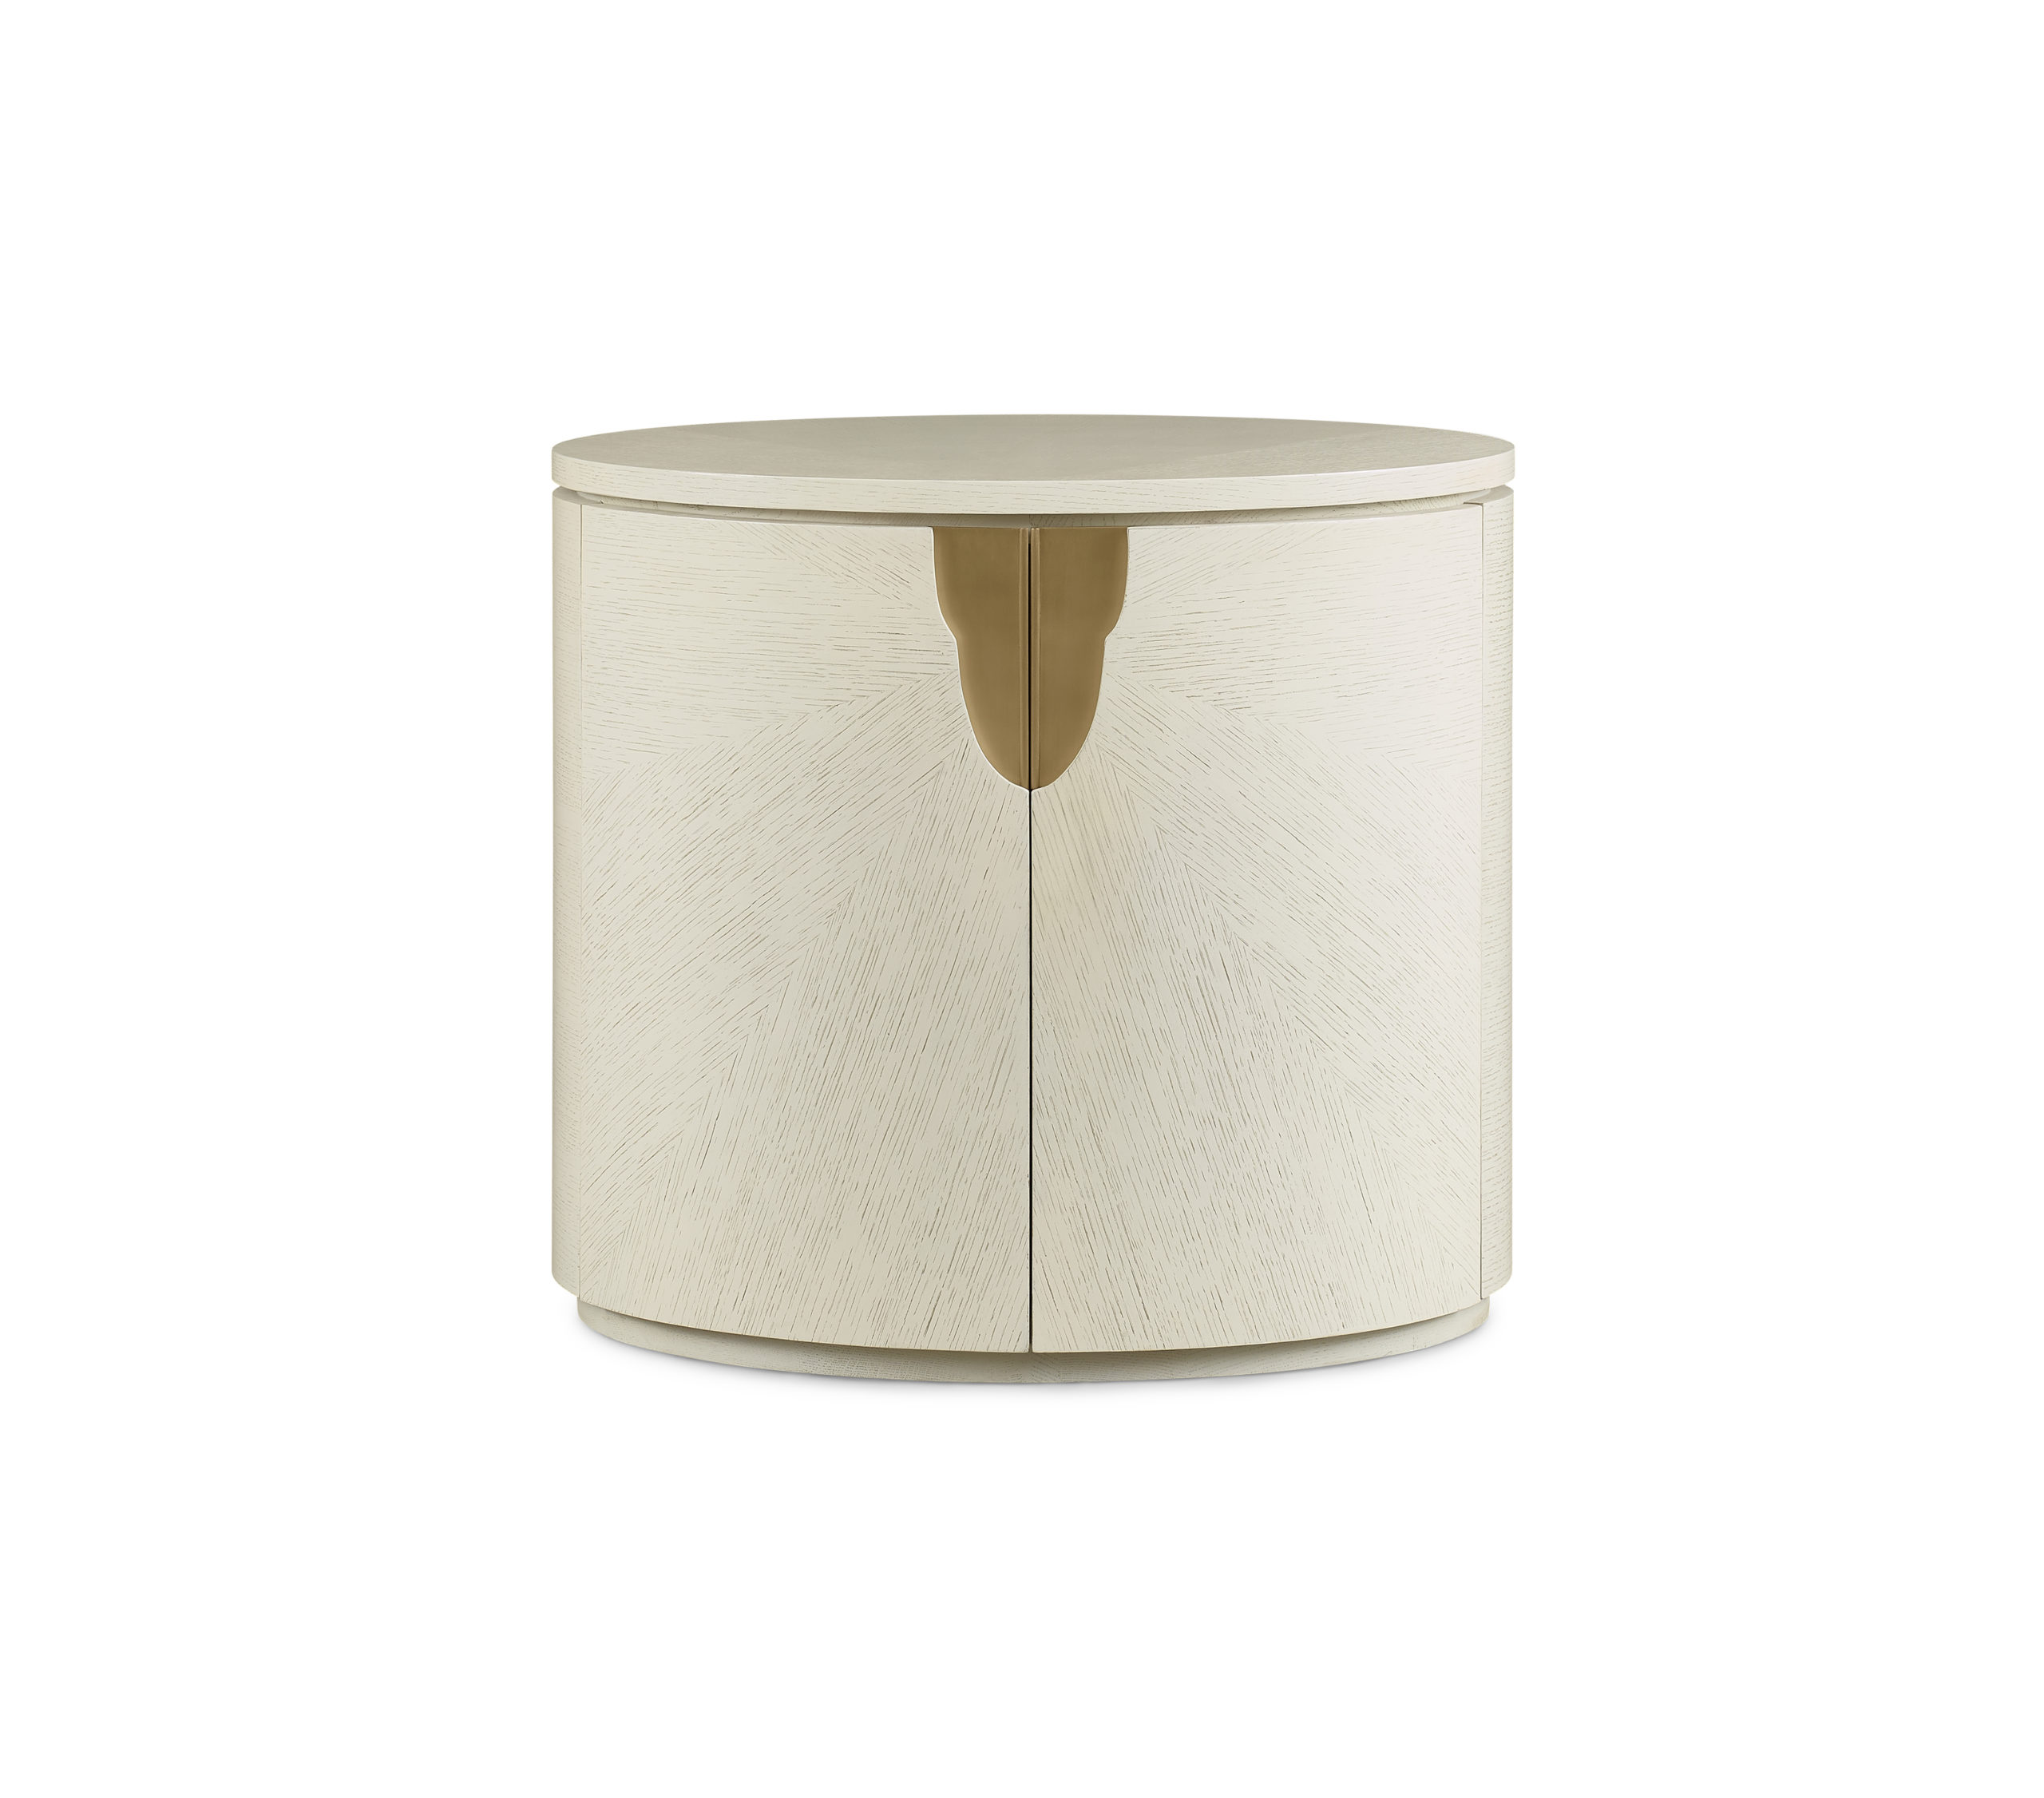 Baker_products_WNWN_dover_bedside_table_BAA3209_FRONT-scaled-2